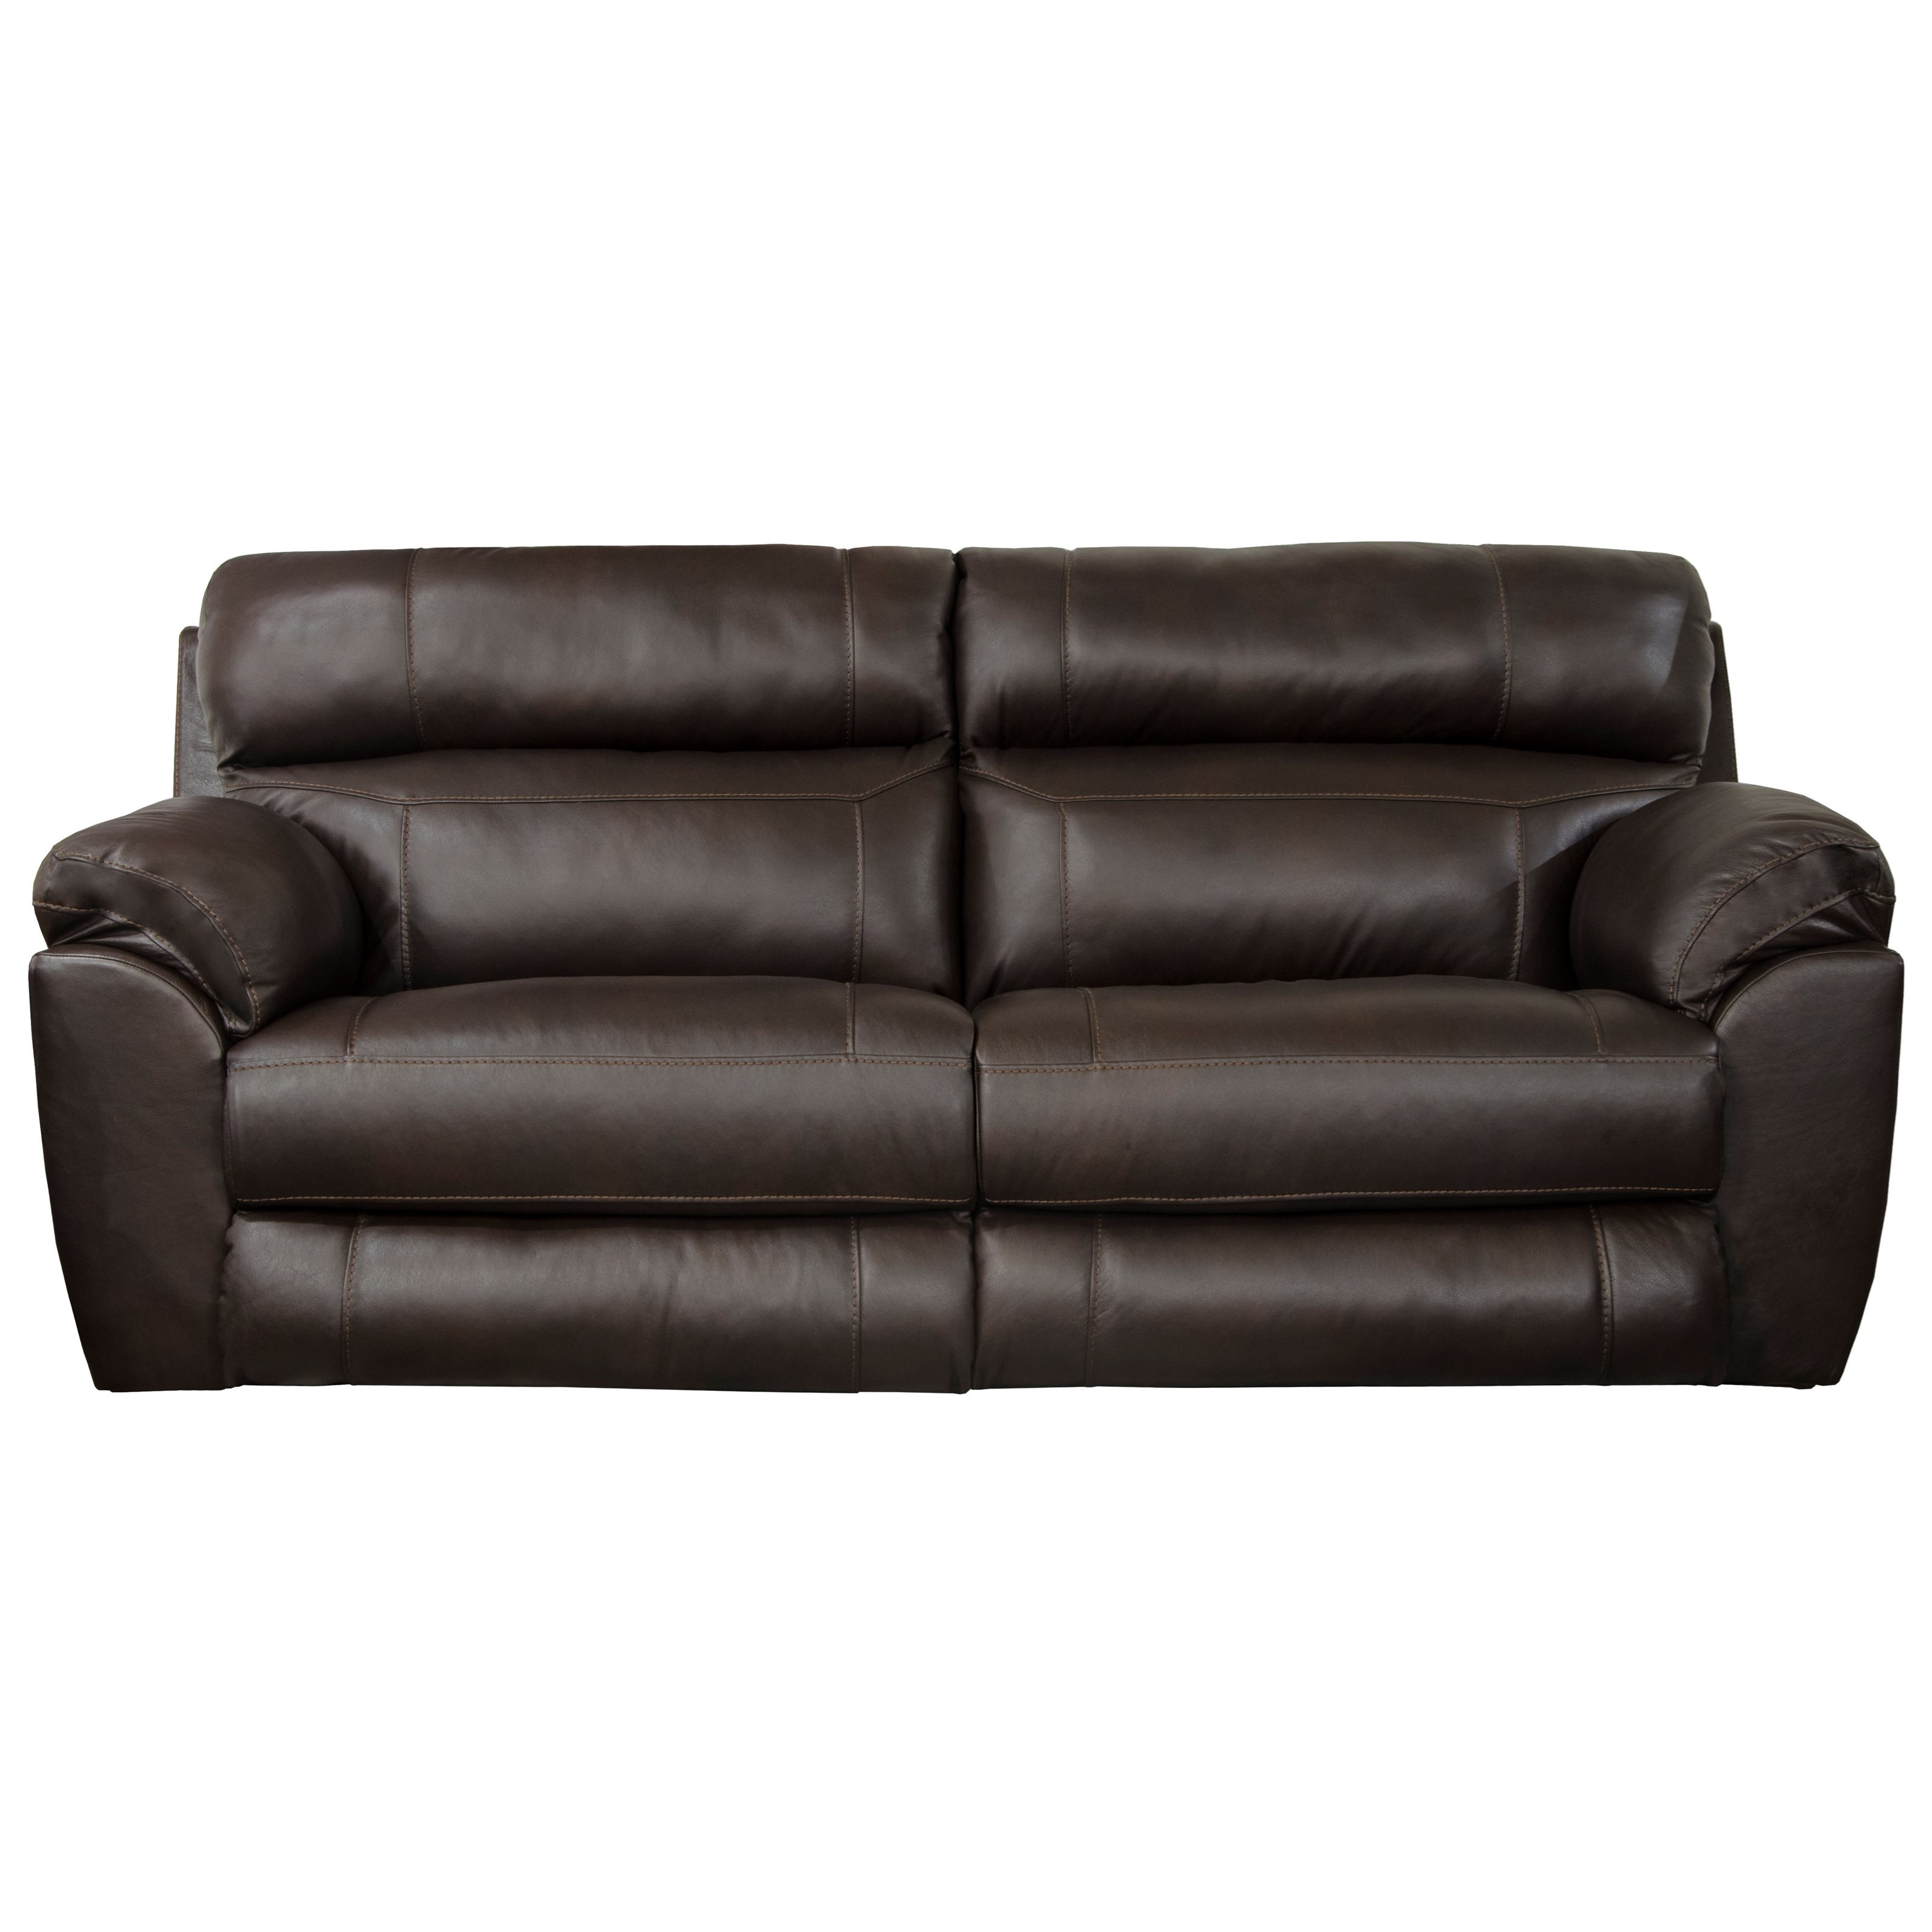 Costa Power Lay Flat Reclining Sofa by Catnapper at Northeast Factory Direct